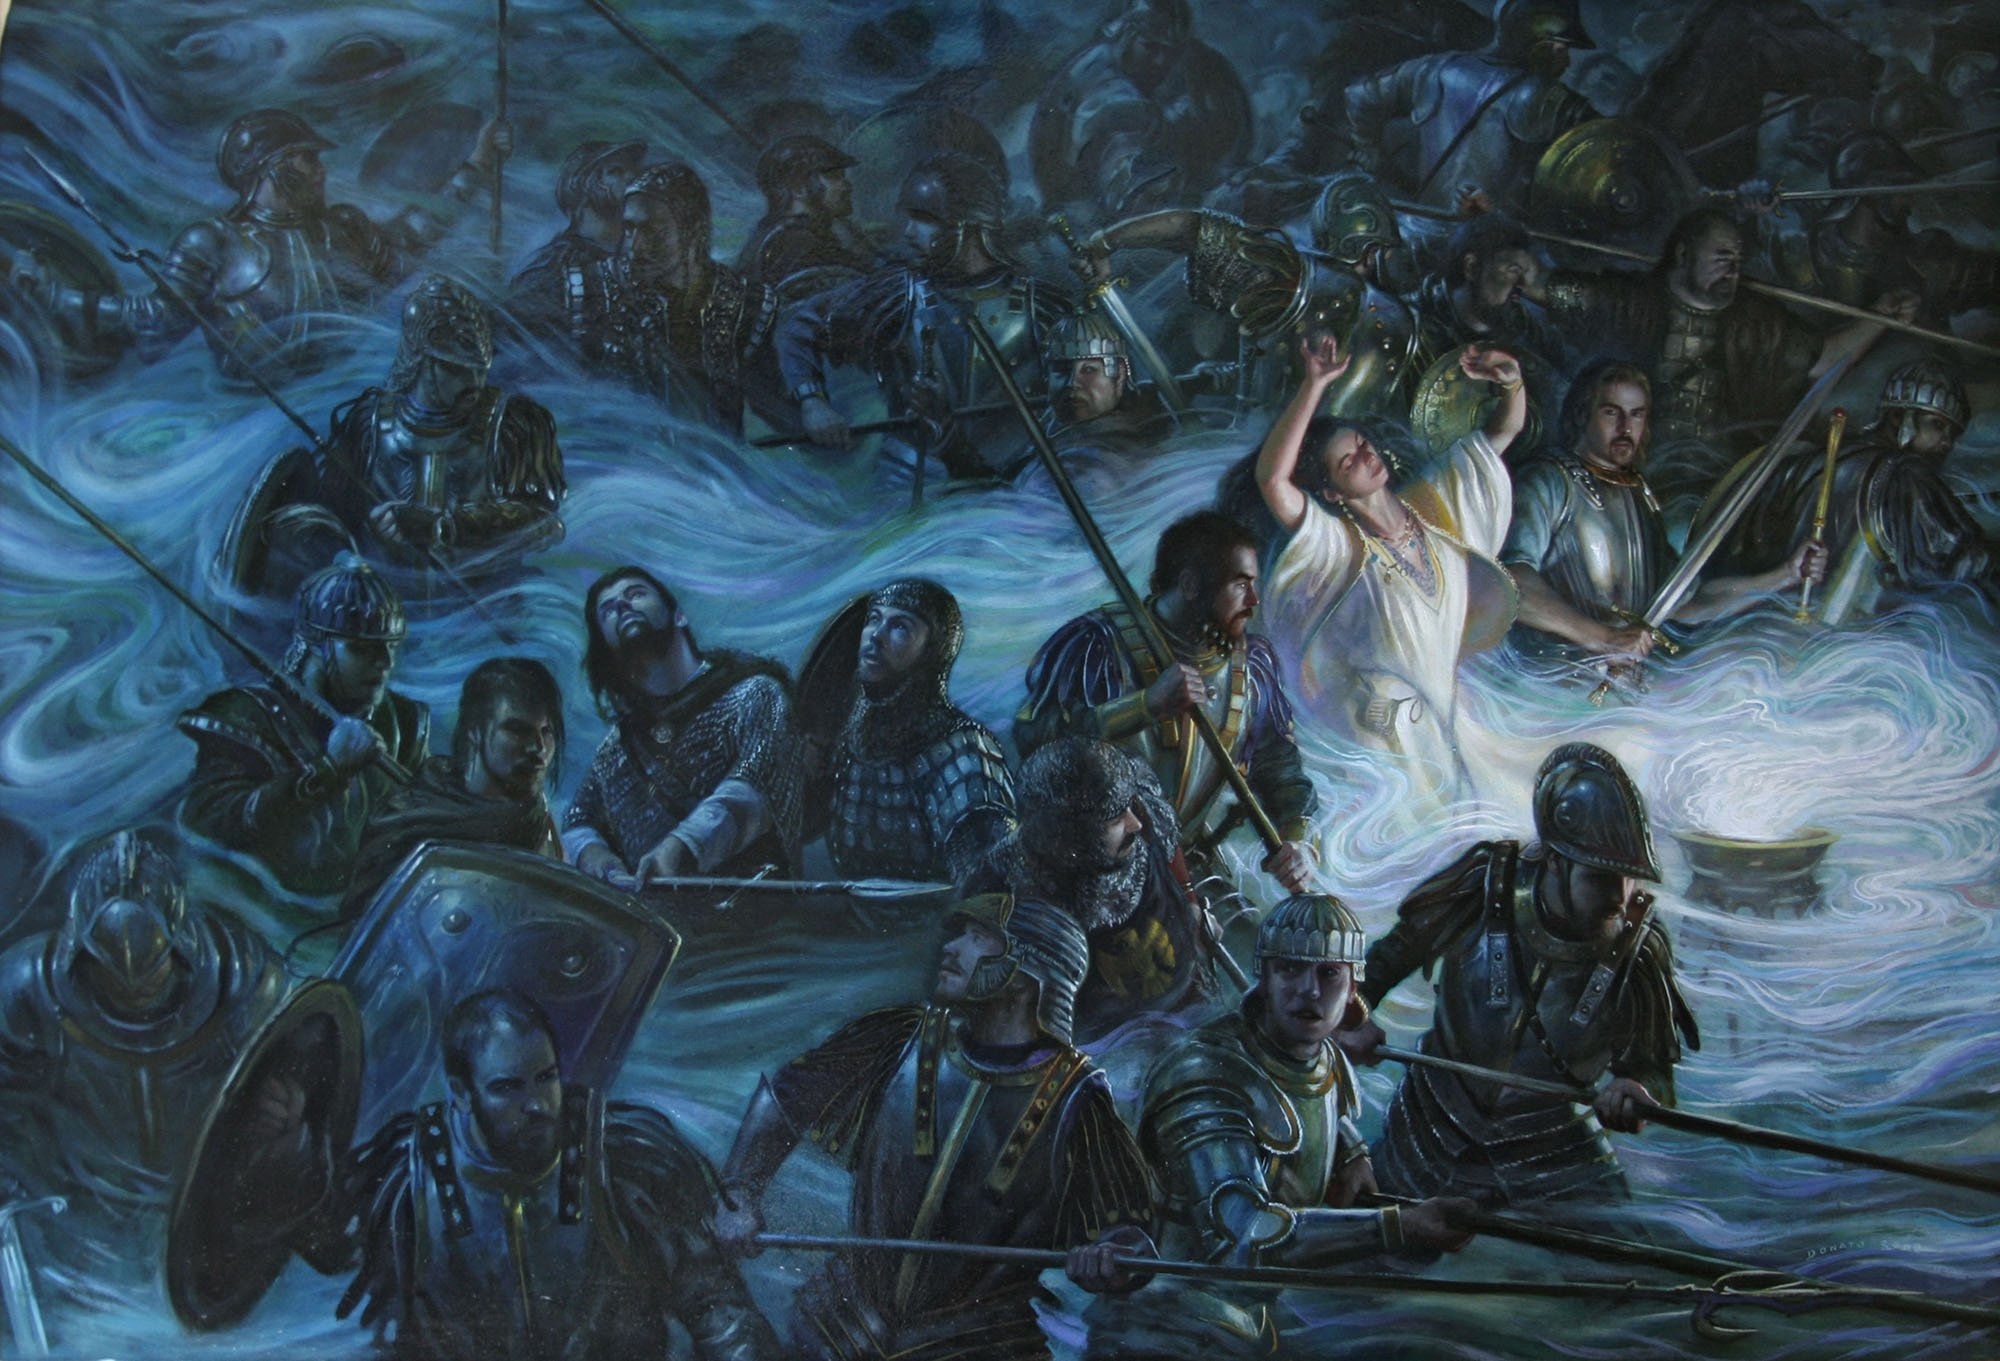 "The Gods Return 36"" x 24"" Oil on Paper on Panel 2008 cover for the novel The Gods Return: The Crown of the Isles, the third novel in The Crown of the Isles series by David Drake private collection"